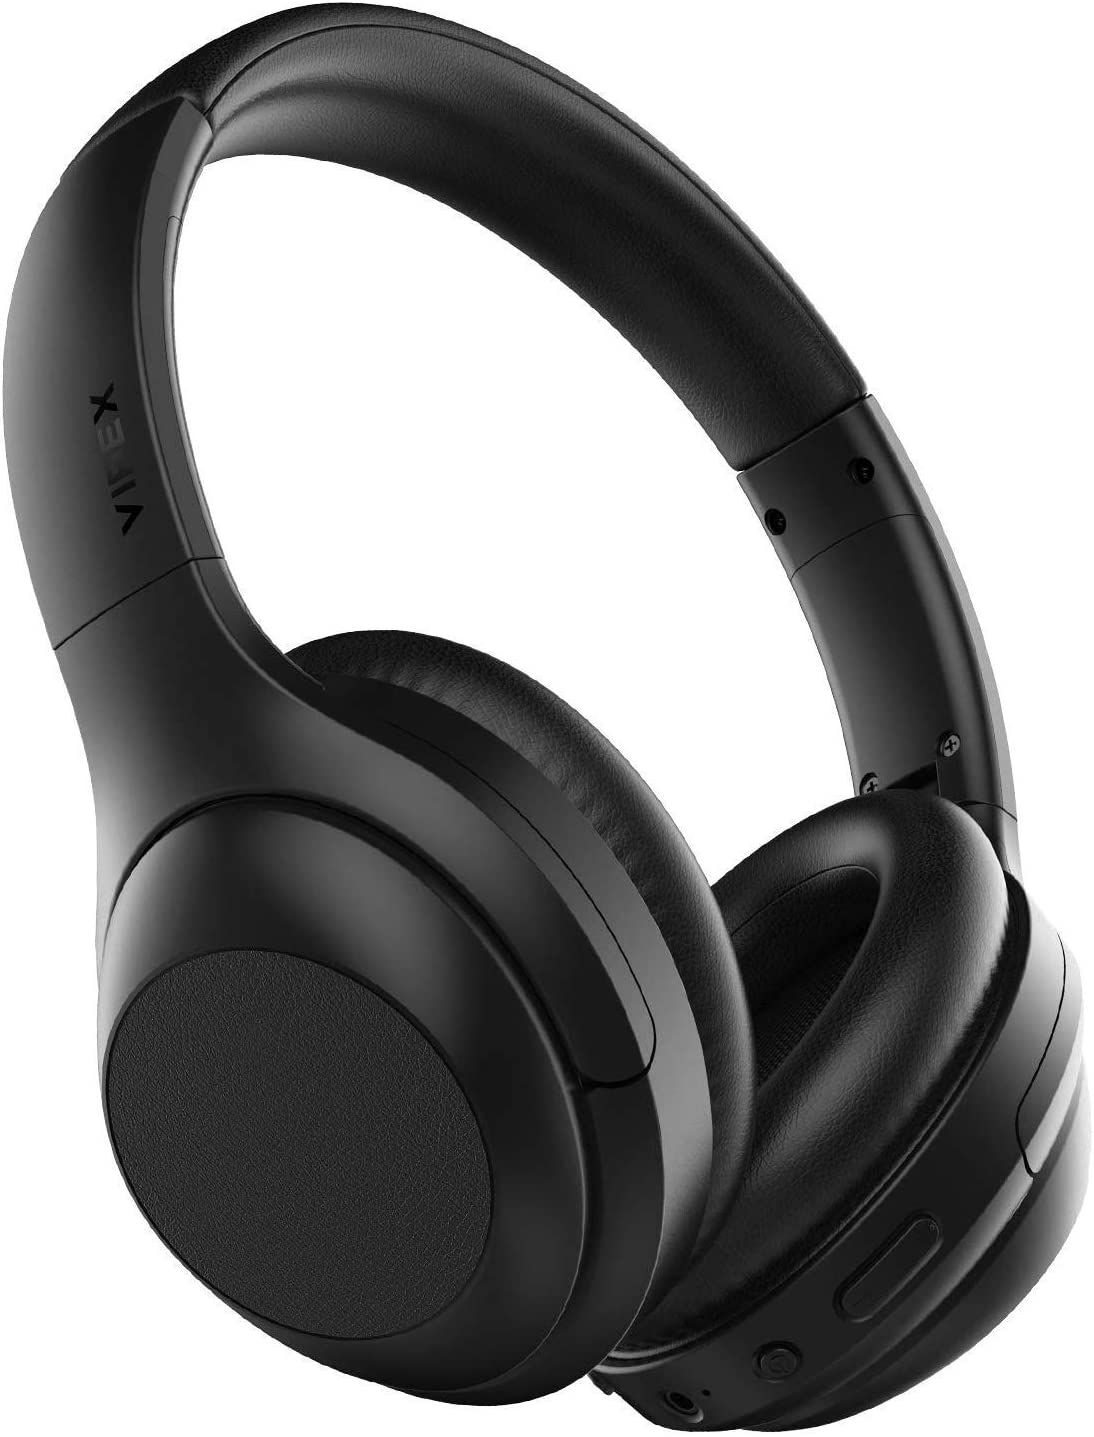 VIPEX Active Noise Cancelling Headphones, Bluetooth 5.0 Headphones Wireless Over Ear Headphones with Microphone, All Day Power with 30 Hours Playtime, Comfortable Protein Earpads Black